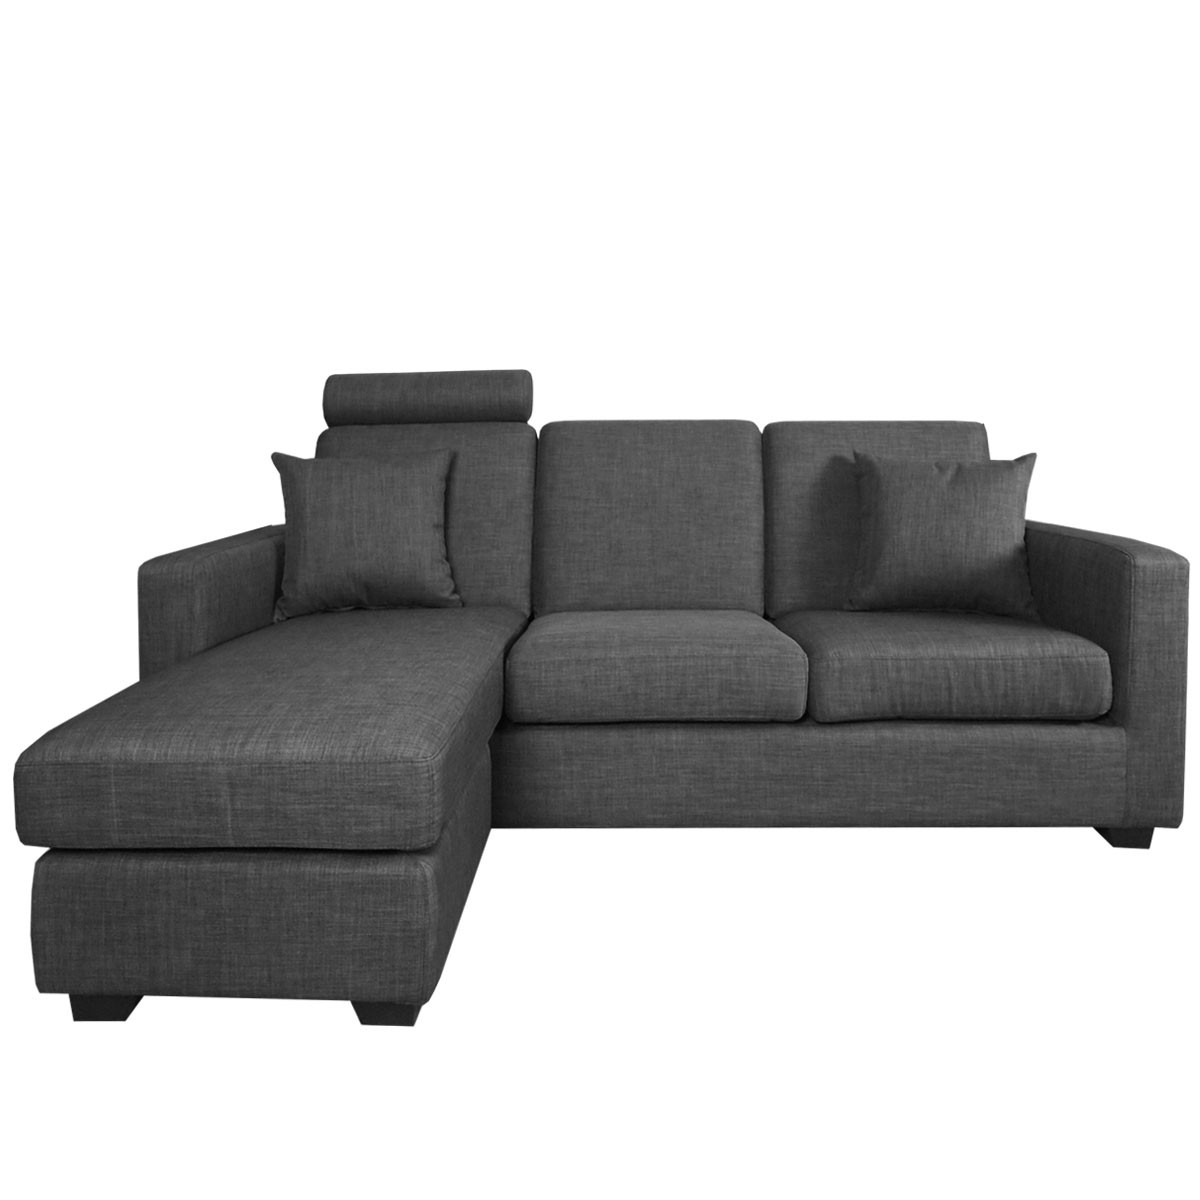 Richmond Sofas Pertaining To Most Popular Richmond Sofa Grey (View 9 of 15)